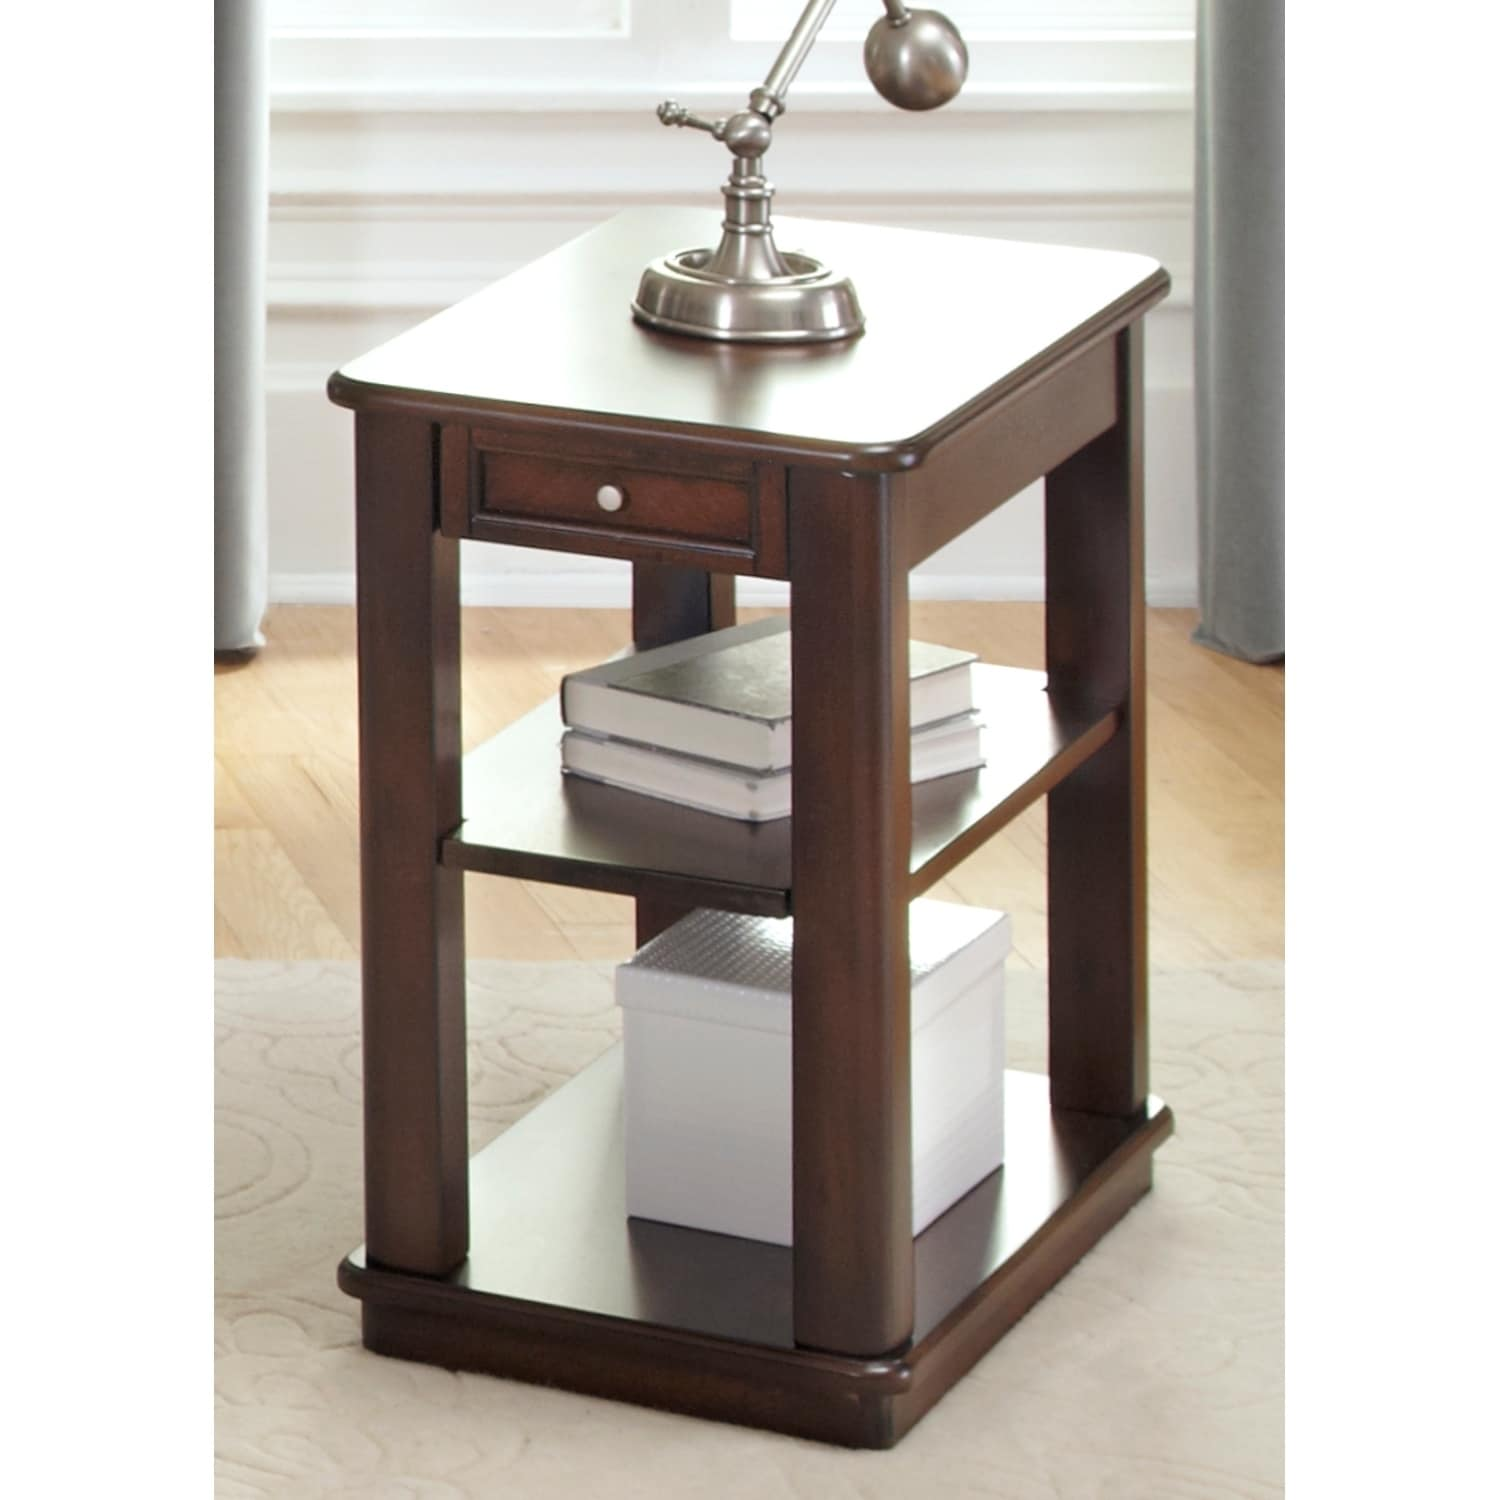 Liberty Wallace Dark Toffee Chair Side Table (Dark Toffee...